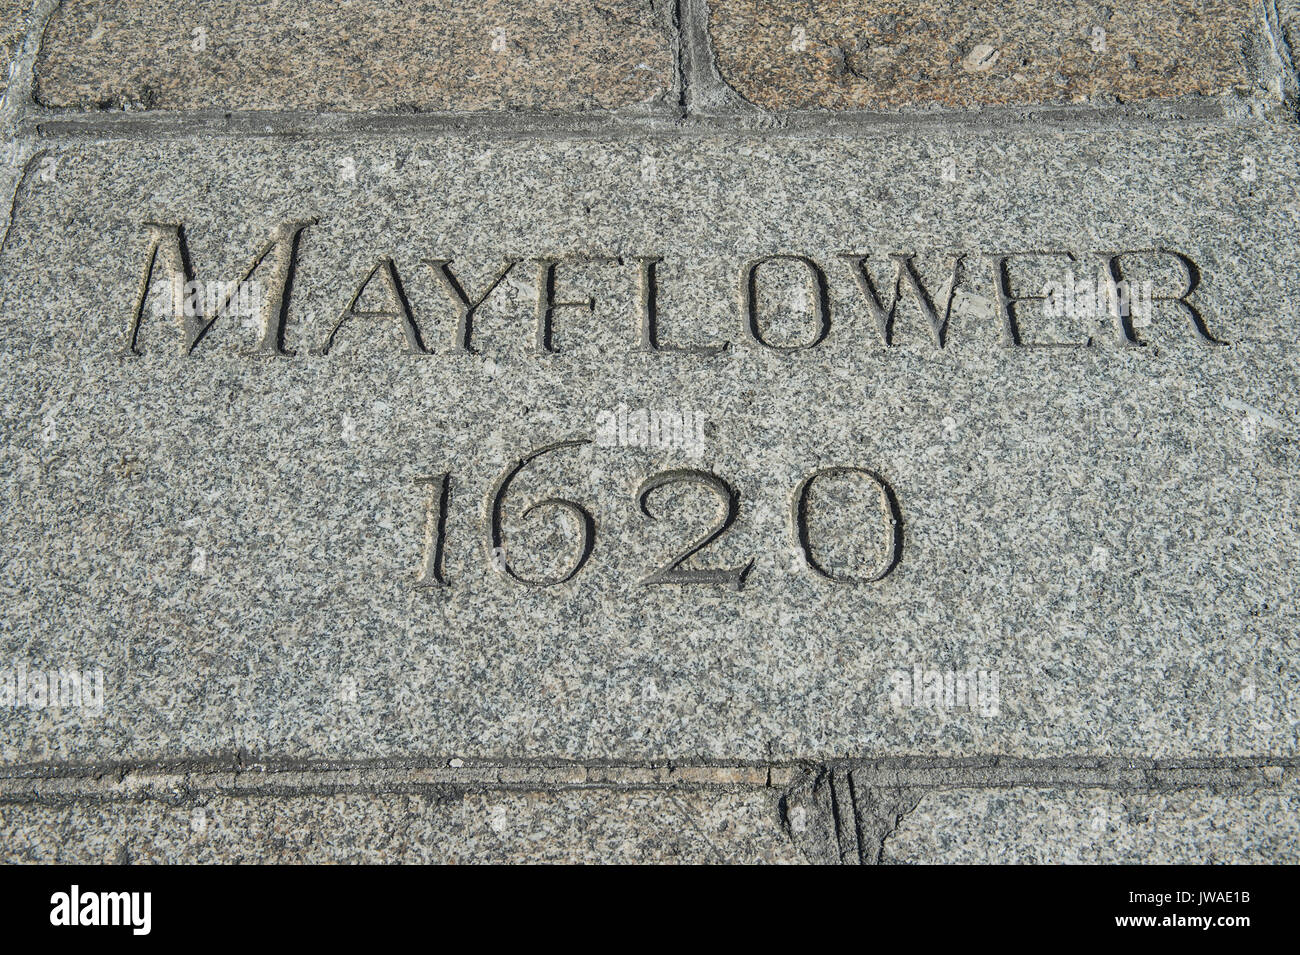 Copyrighted Image by Paul Slater/PSI Mayflower Steps, 1620, Barbican, Plymouth - Pilgrim Fathers - Stock Image